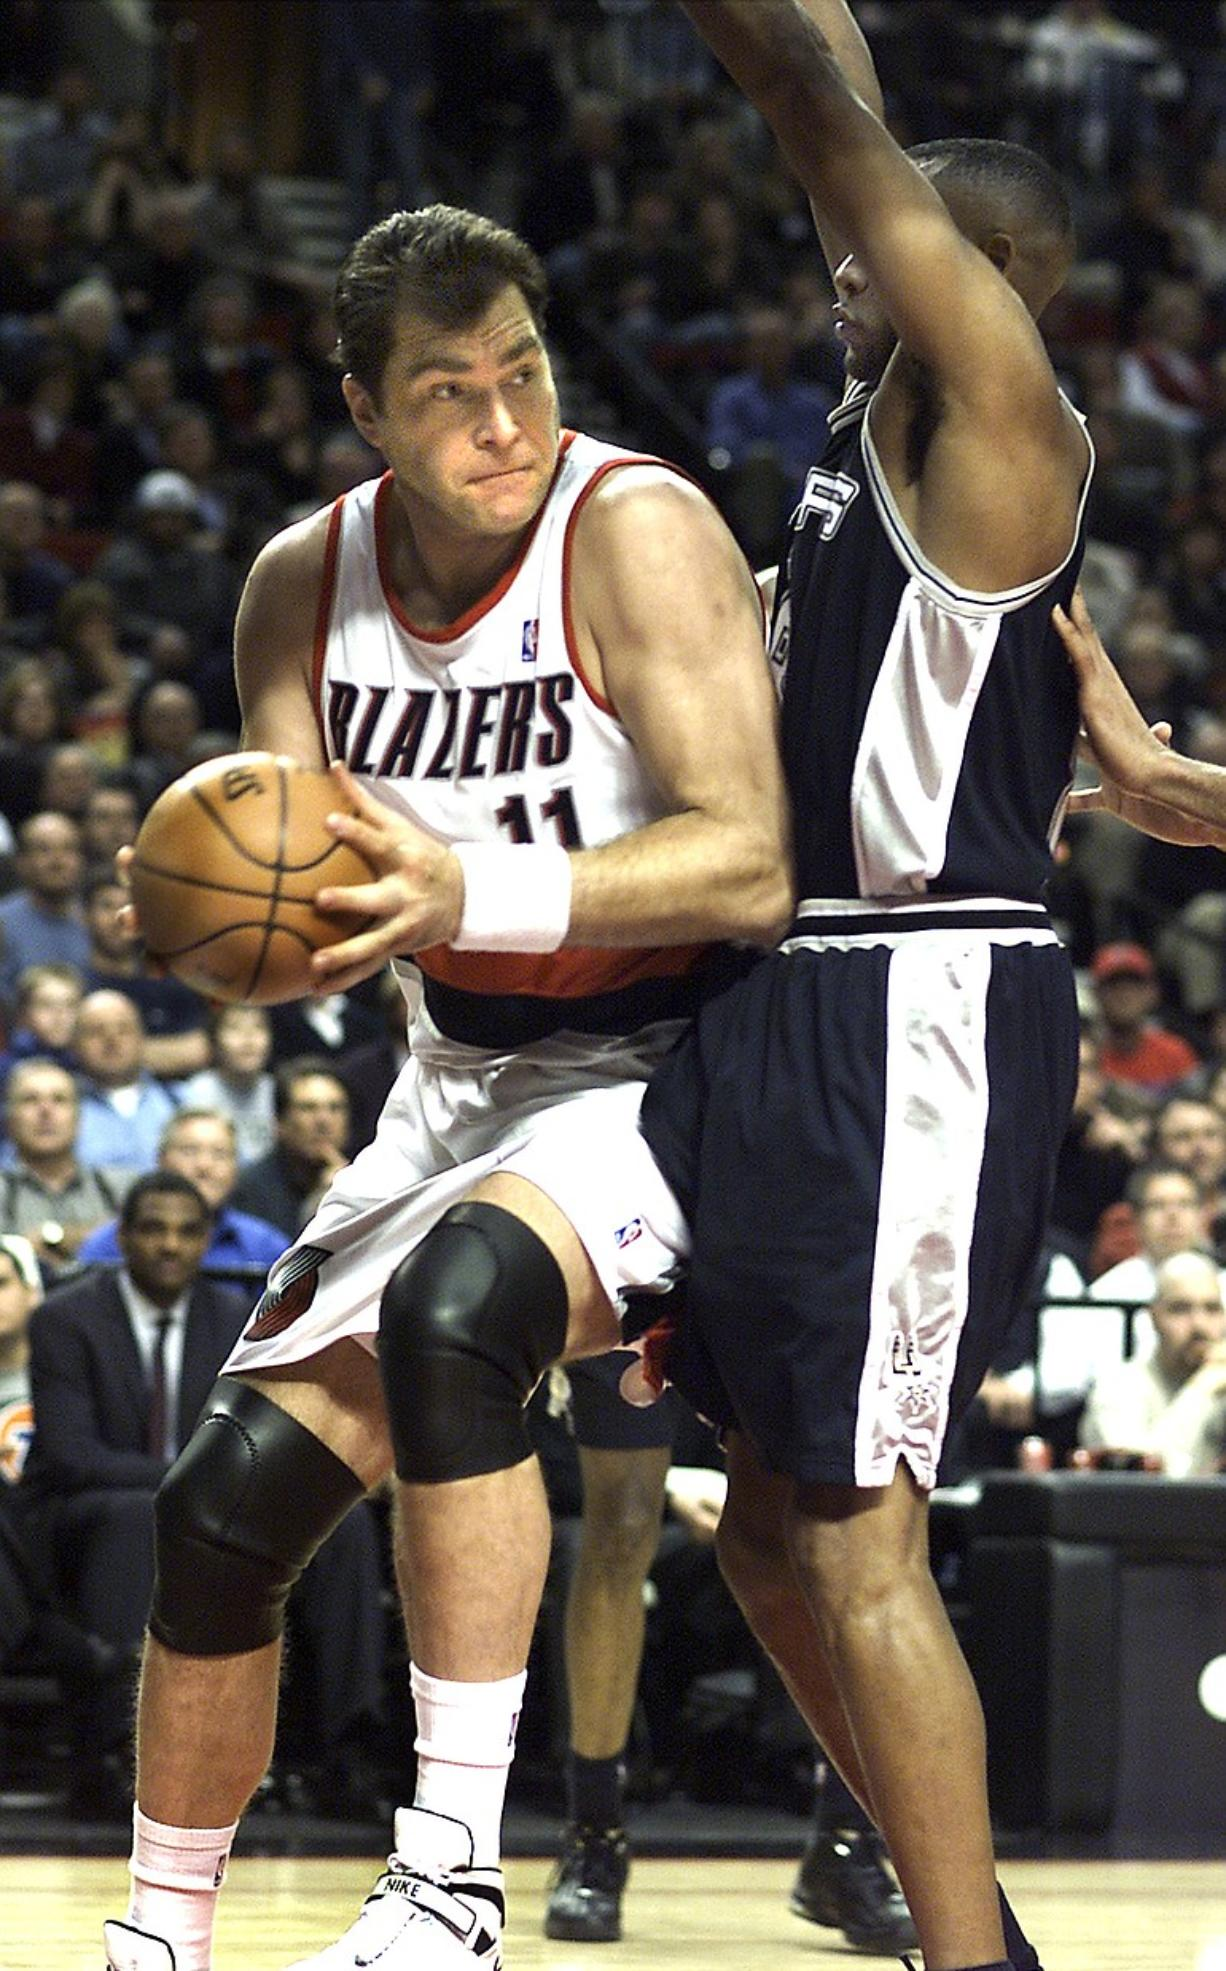 Blazers center Arvydas Sabonis, pictured here in 2003, was elected to the Naismith Memorial Basketball Hall of Fame's Class of 2011.